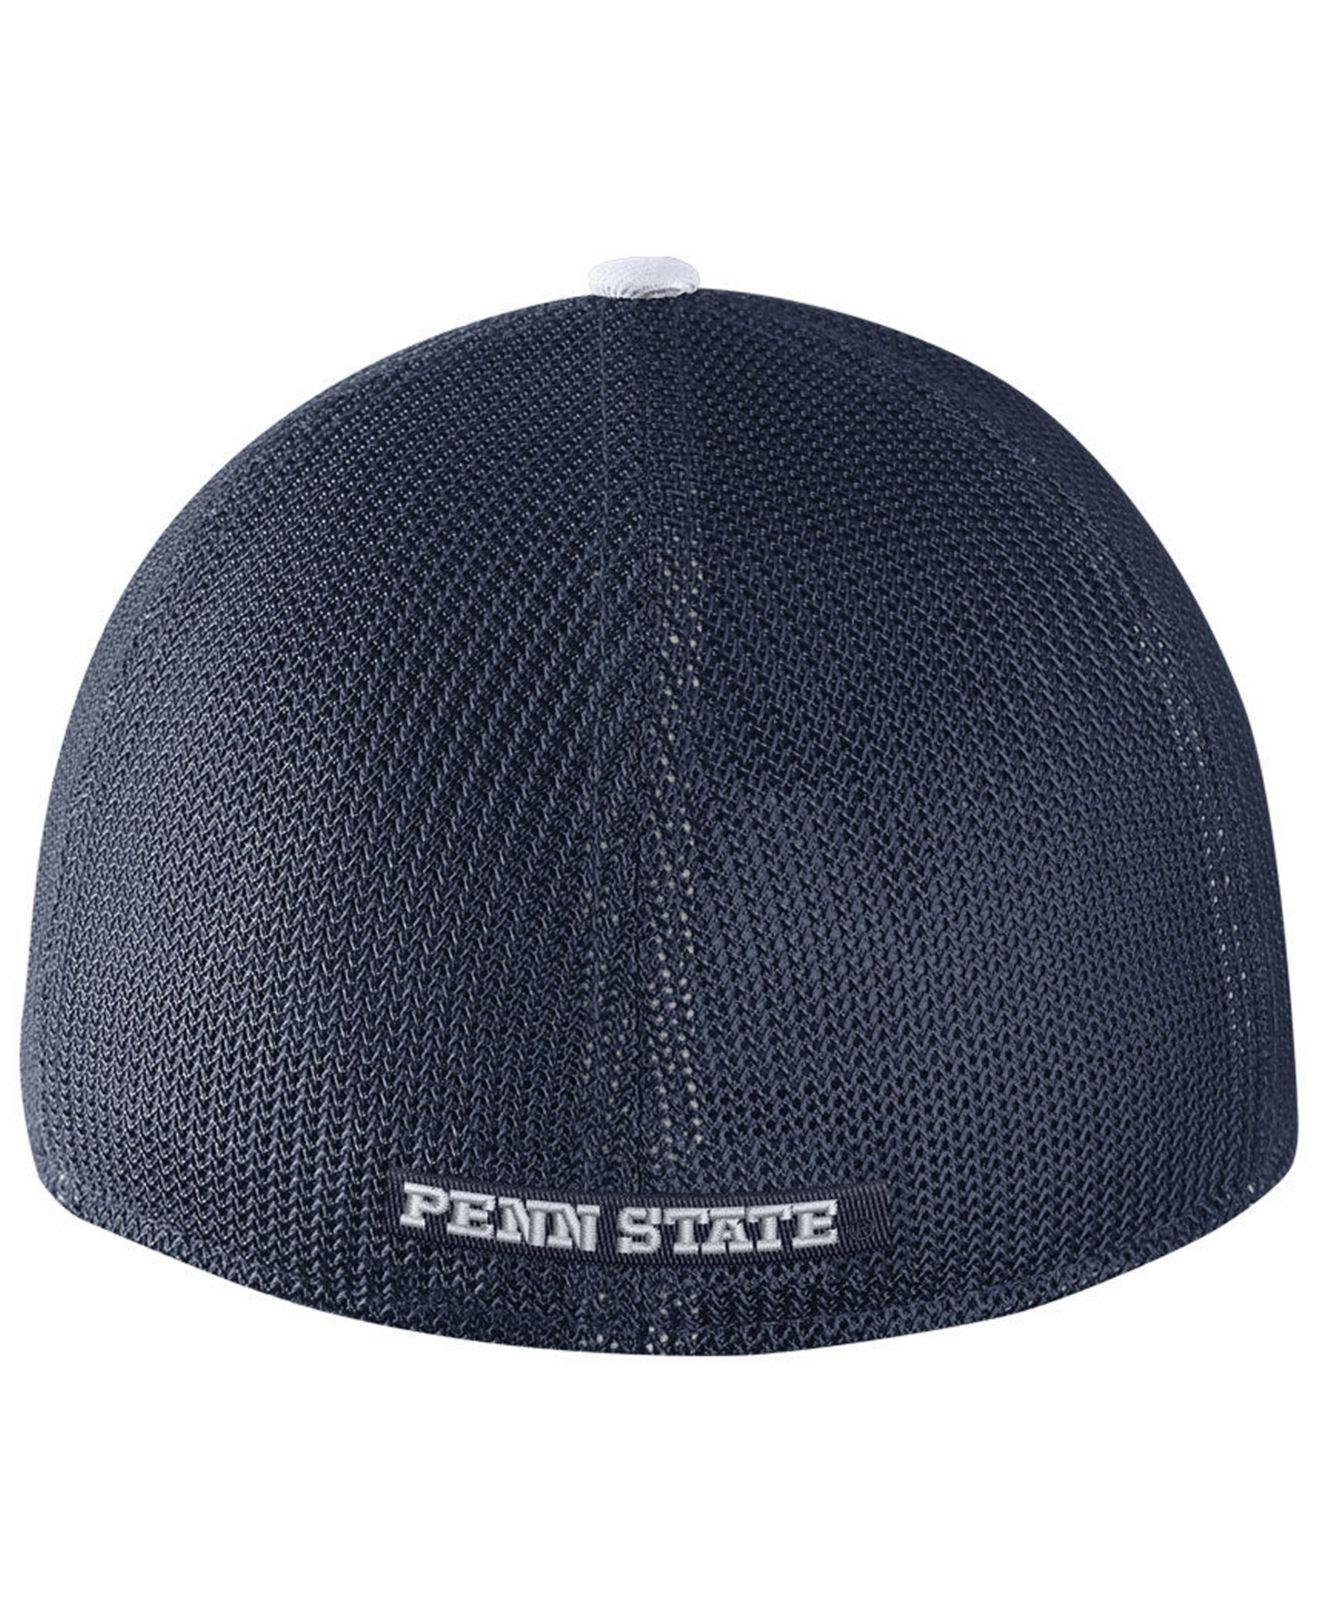 the latest e25de 8b04b ... promo code lyst nike penn state nittany lions col aro swooshflex  stretch fitted cap in blue